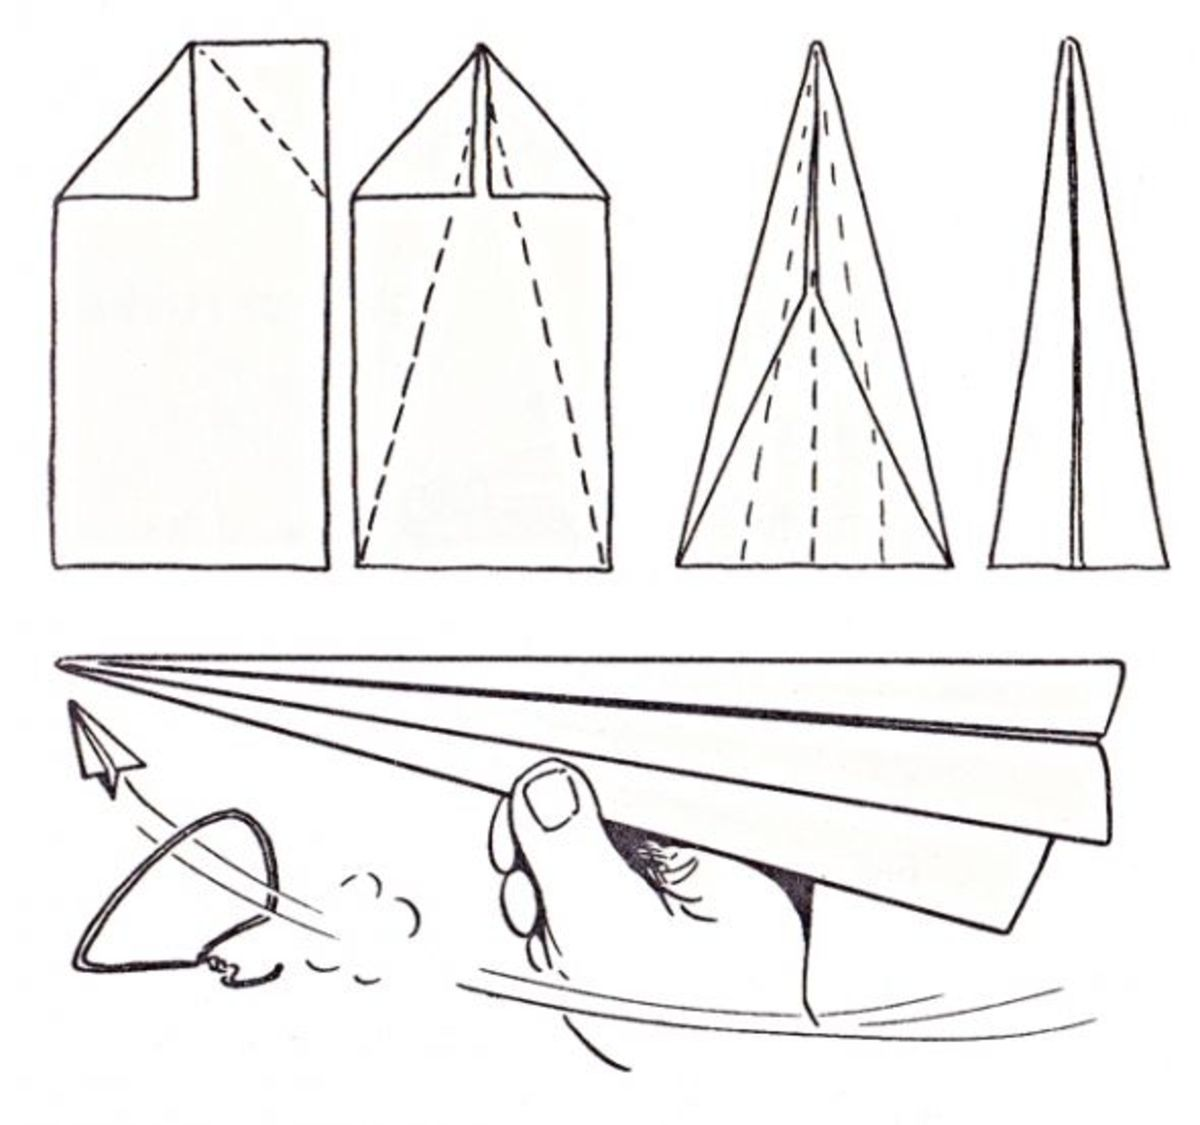 Arrow Hoop Paper Airplane Game Instructions